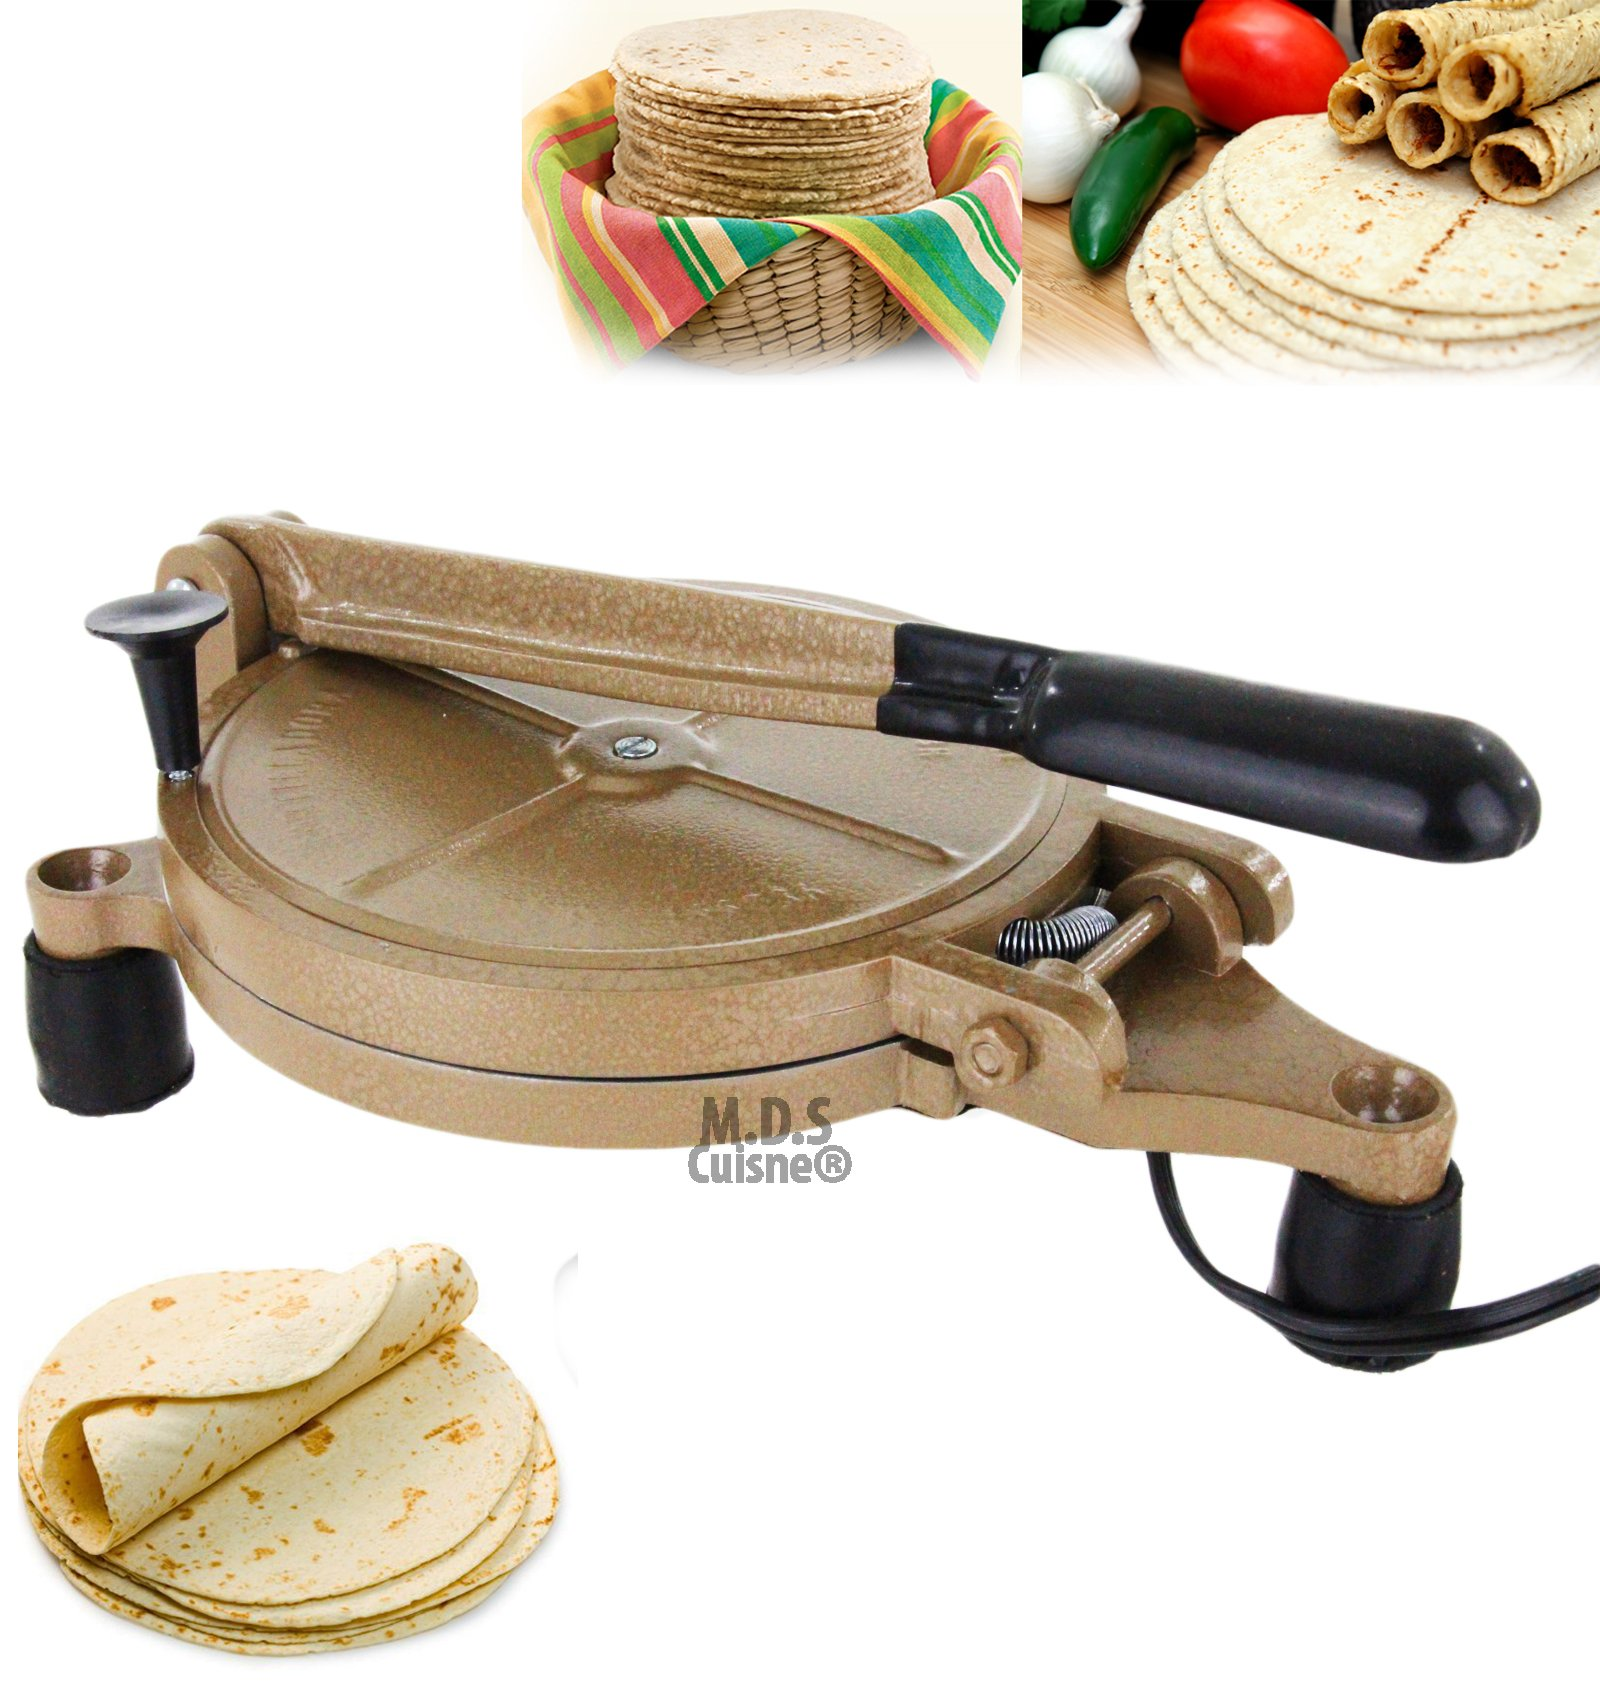 Electric Tortilla Press Baking Maker Heavy Duty Authentic Mexican Non Stick New by M.D.S Cuisine Cookwares